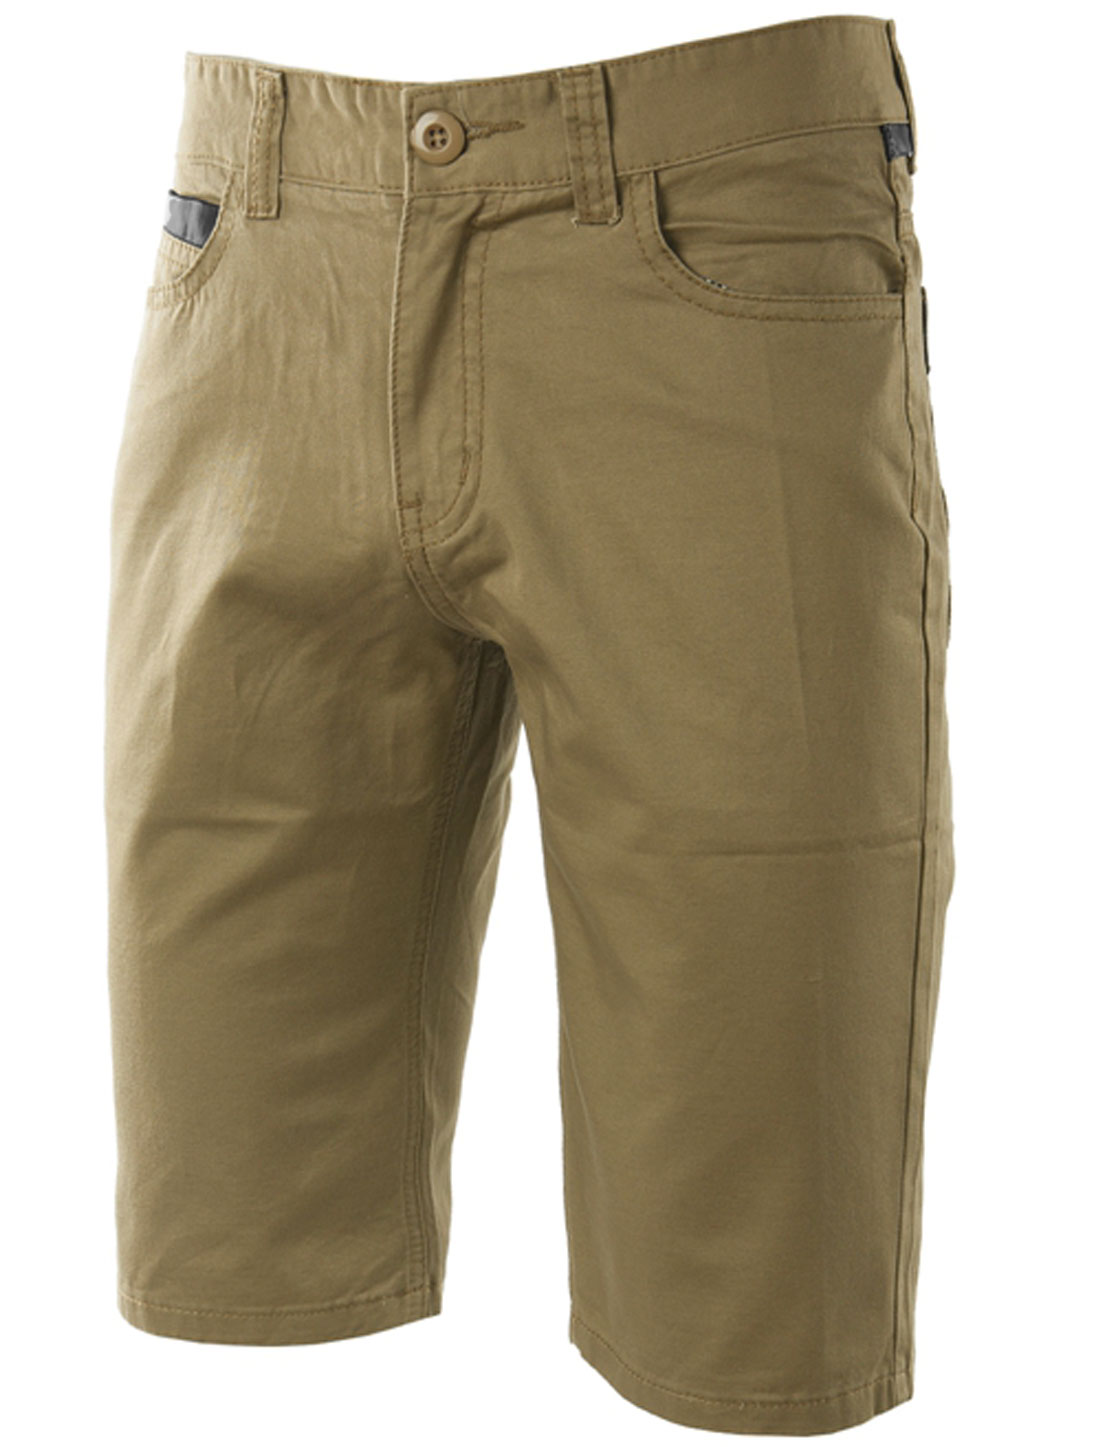 Mid Rise Leather Trimmed Single Button Closure Shorts for Man Khaki W34